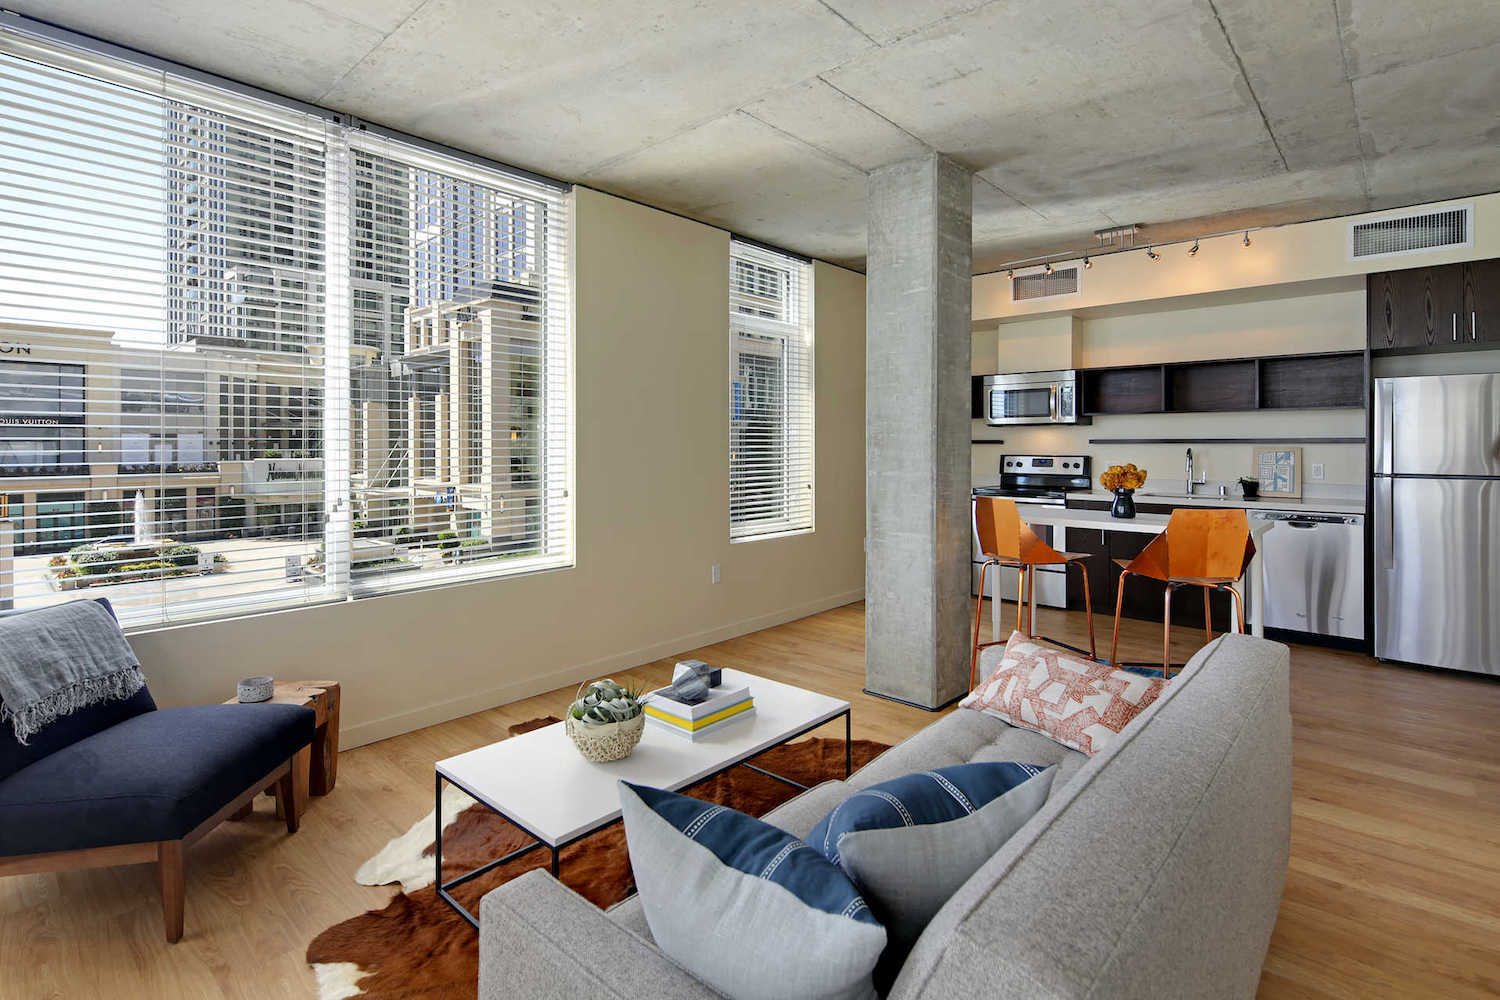 Open floor plan with modern kitchen and large windows | Alley 111 Apartments